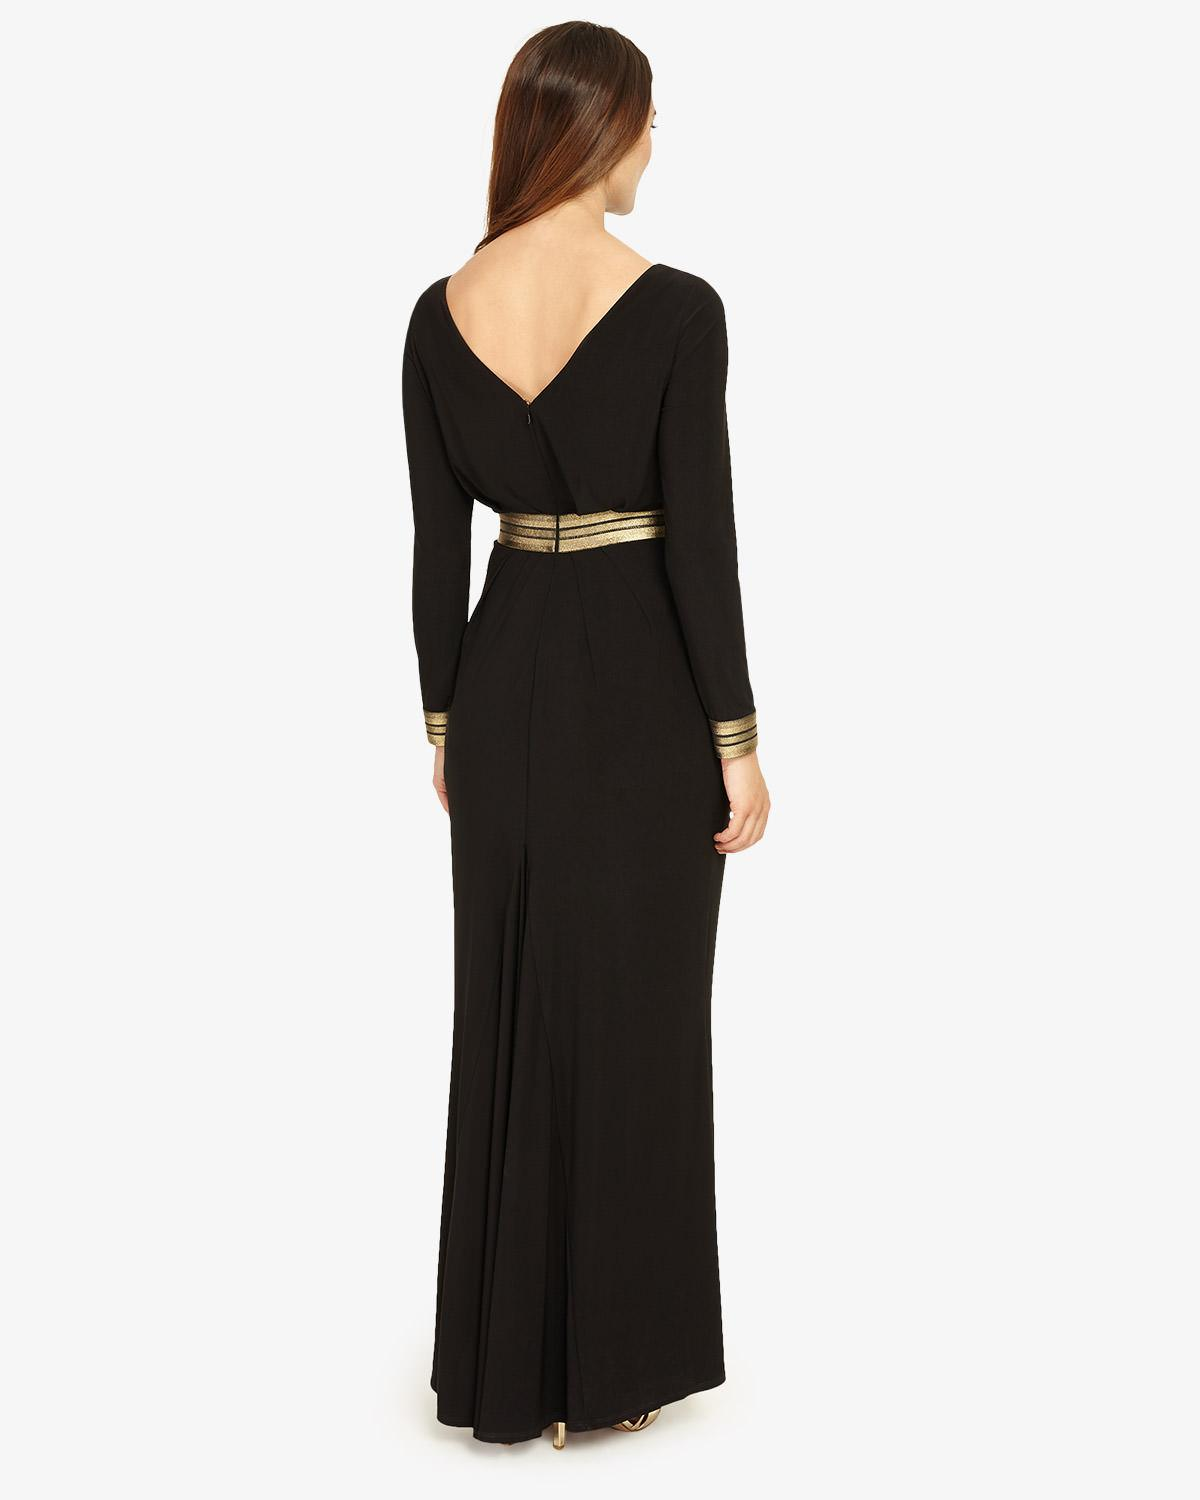 c025151c707d3 Phase Eight Faber Maxi Dress in Black - Lyst